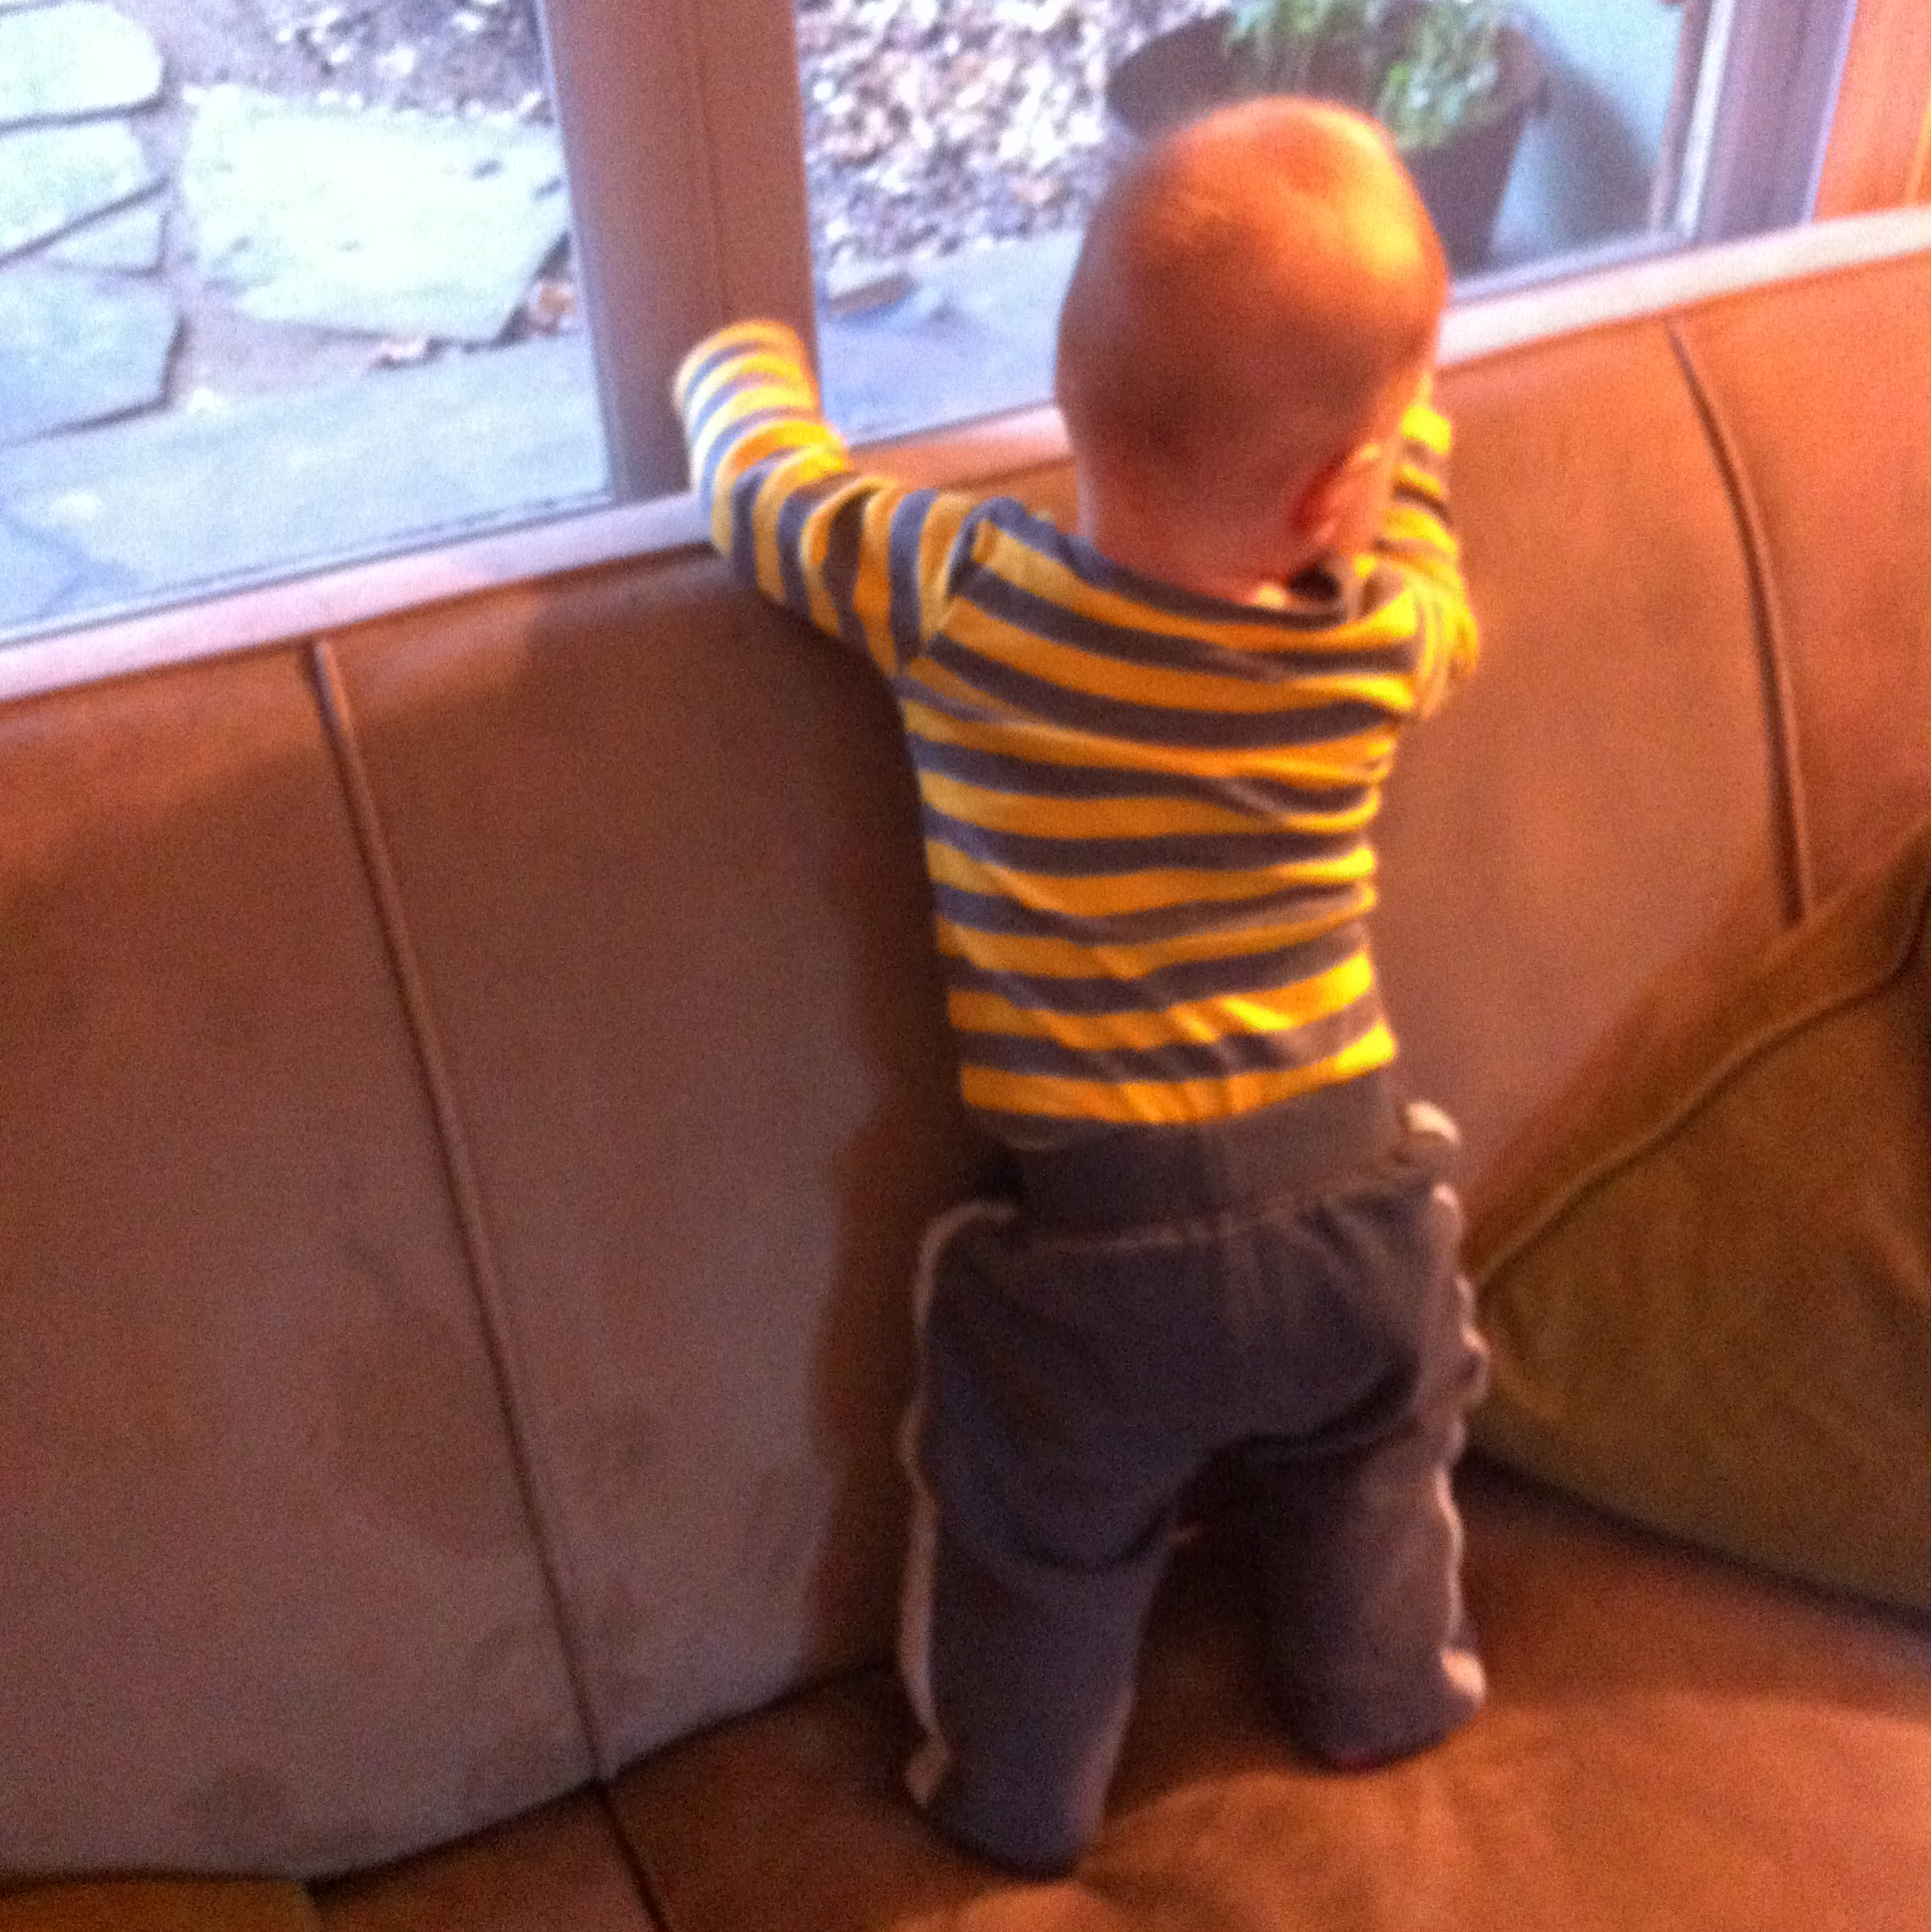 Baby proofing the home and childproofing advice for toddlers